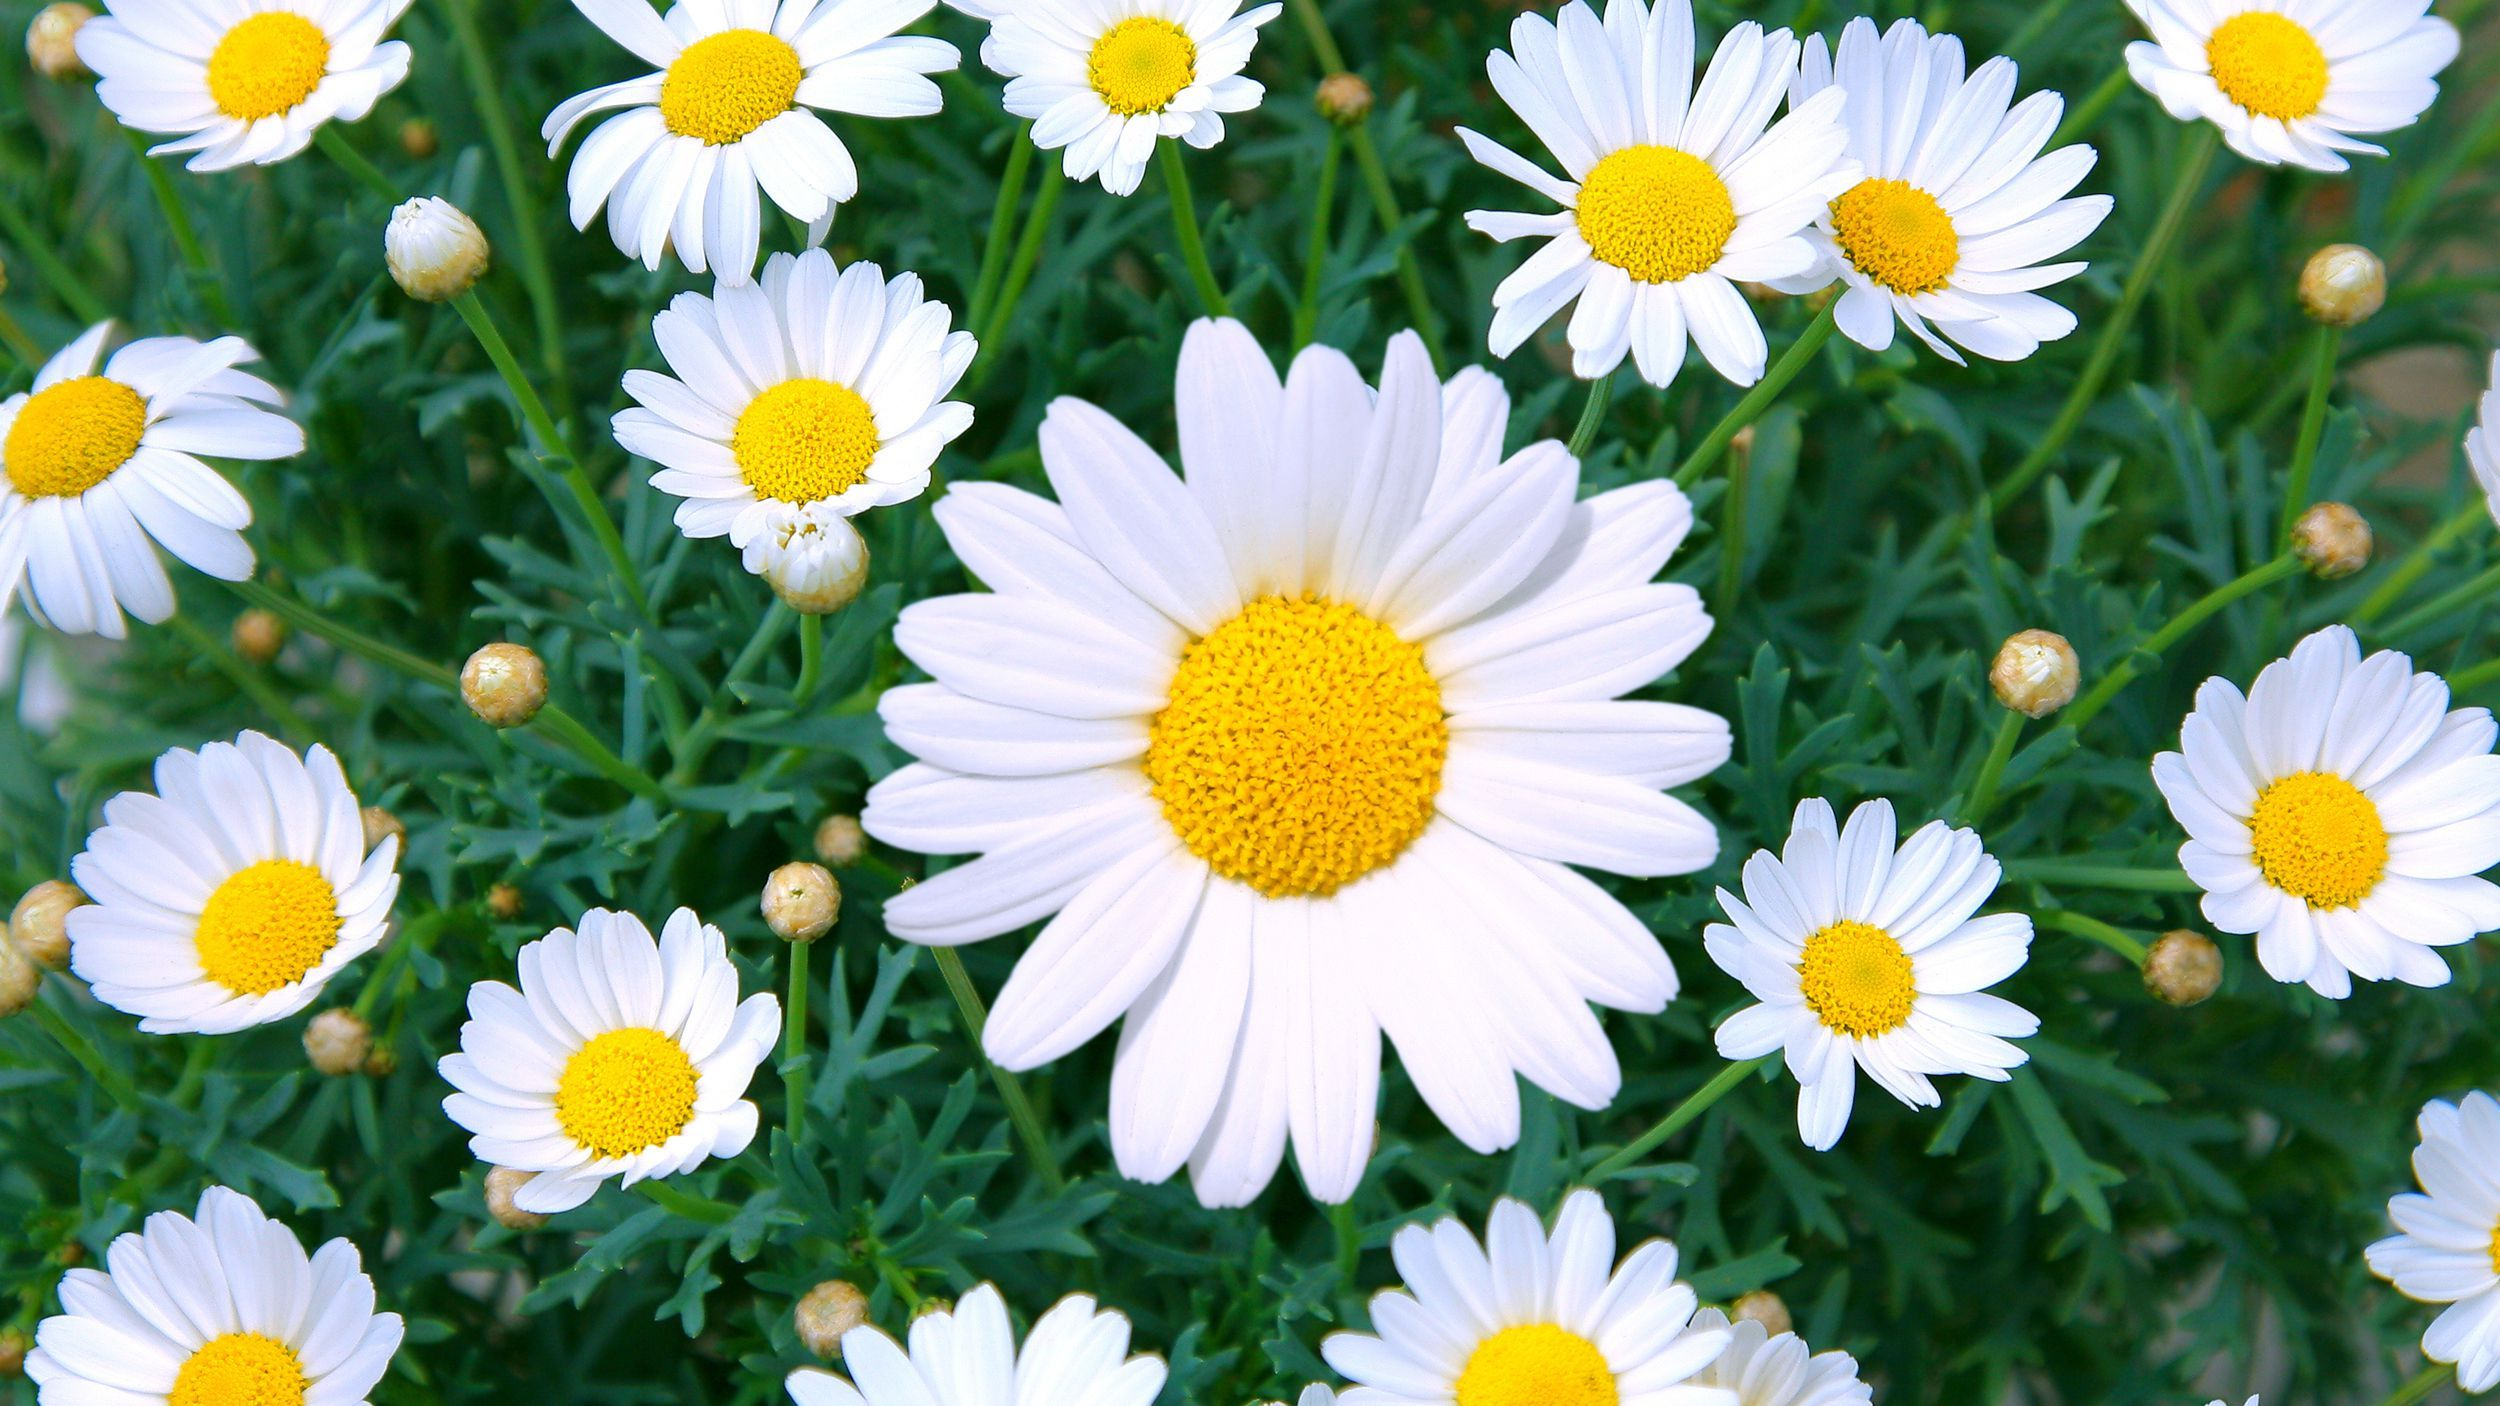 Daisy care how to plant grow outdoor daisy flowers in a garden izmirmasajfo